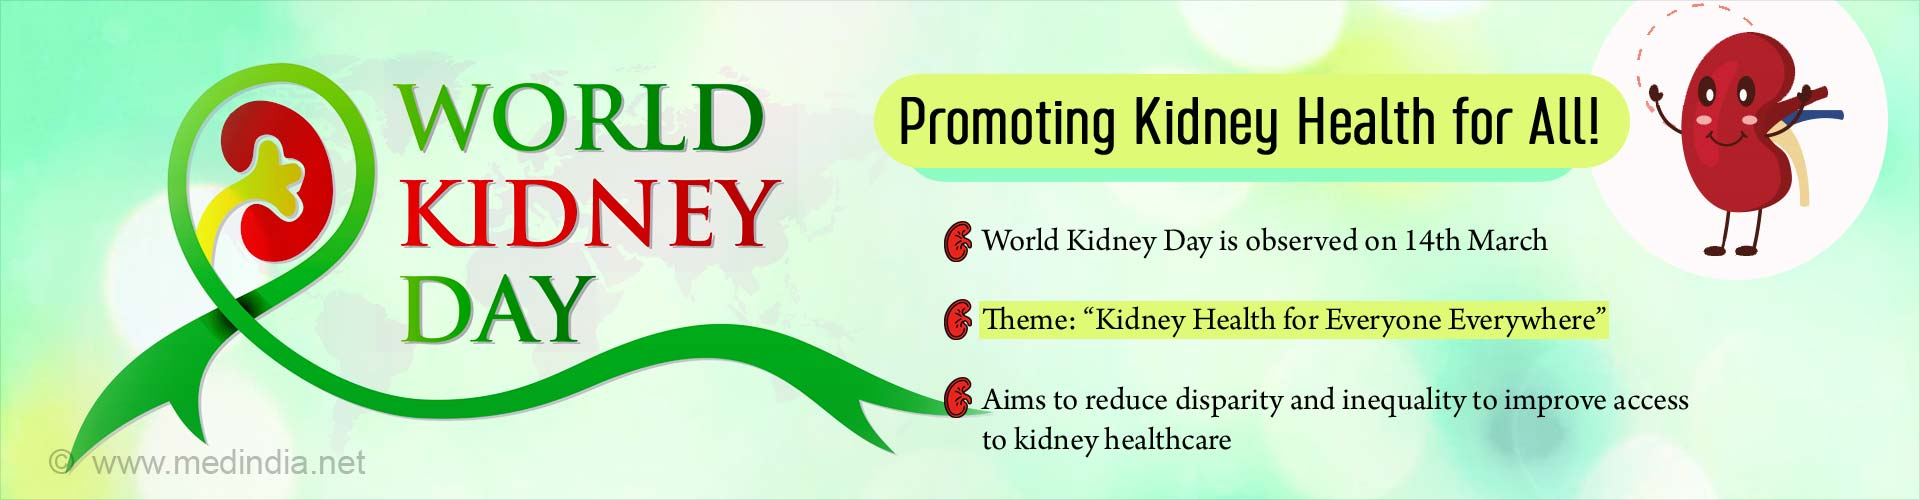 World Kidney Day - 'Kidney Health for Everyone Everywhere'